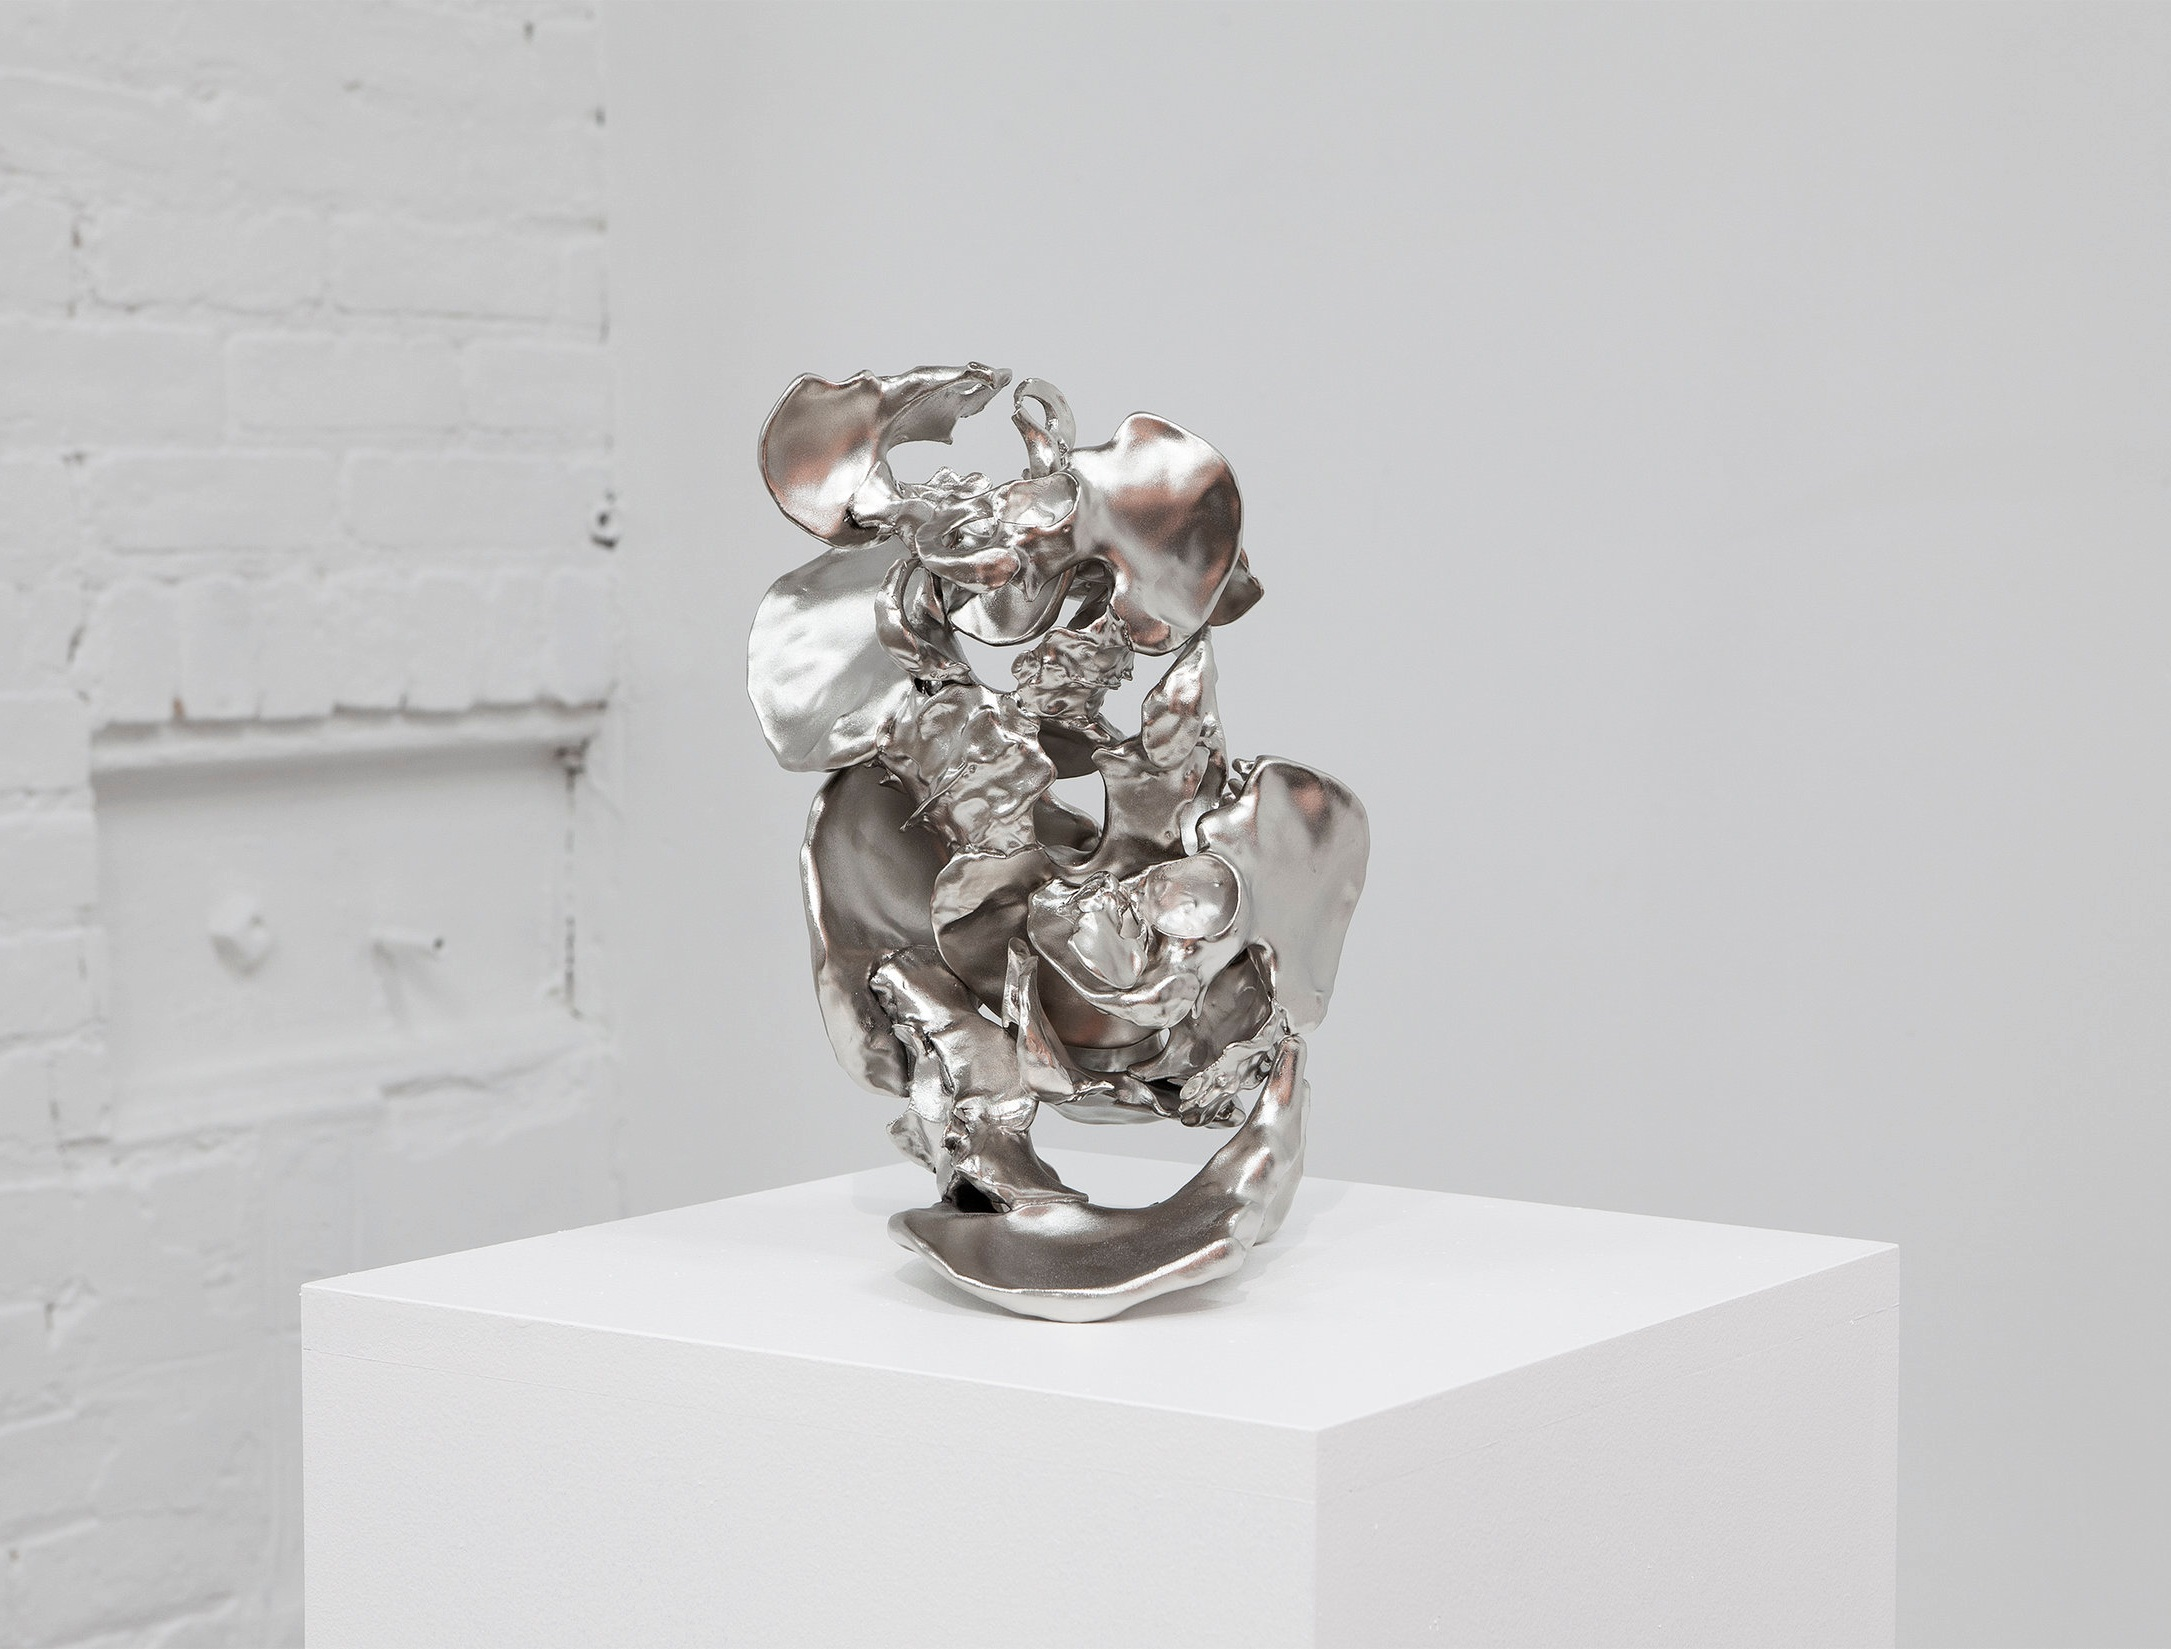 Carol Peligian  6lbs 4oz , 2019 Nickel-plated bronze ,14 x 10 x 10 inches